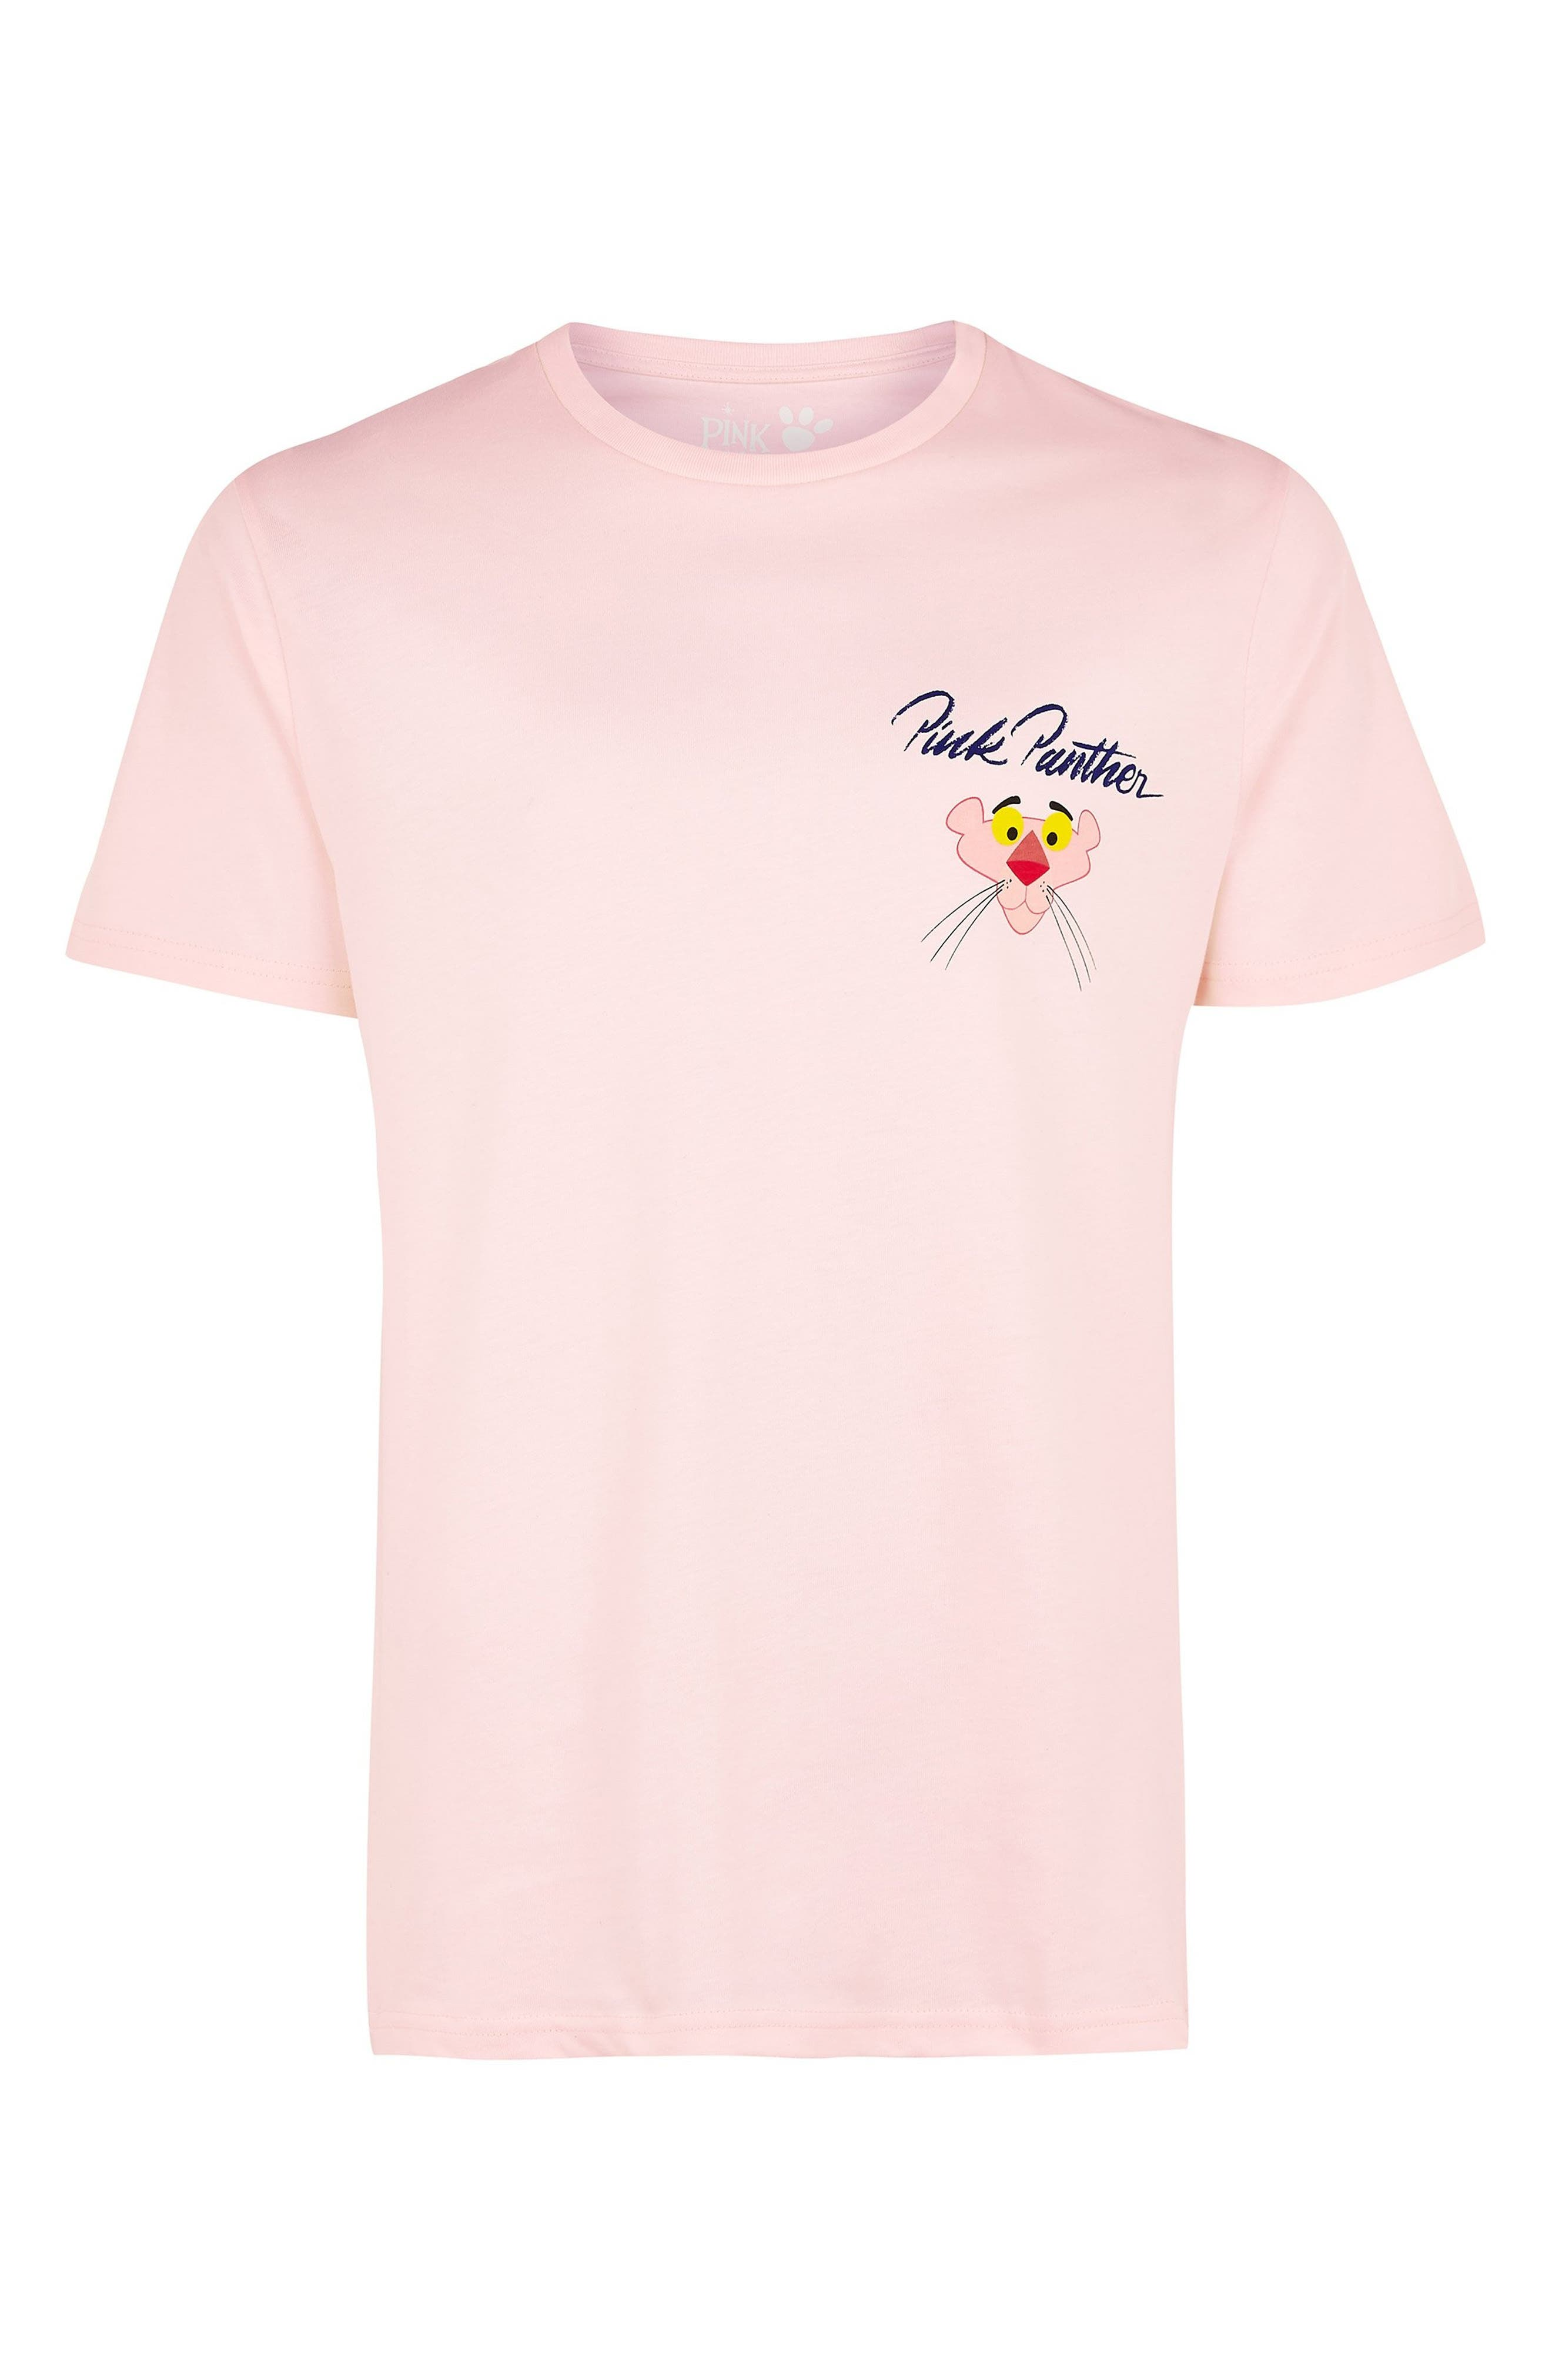 Pink Panther Graphic T-Shirt,                             Alternate thumbnail 4, color,                             PINK